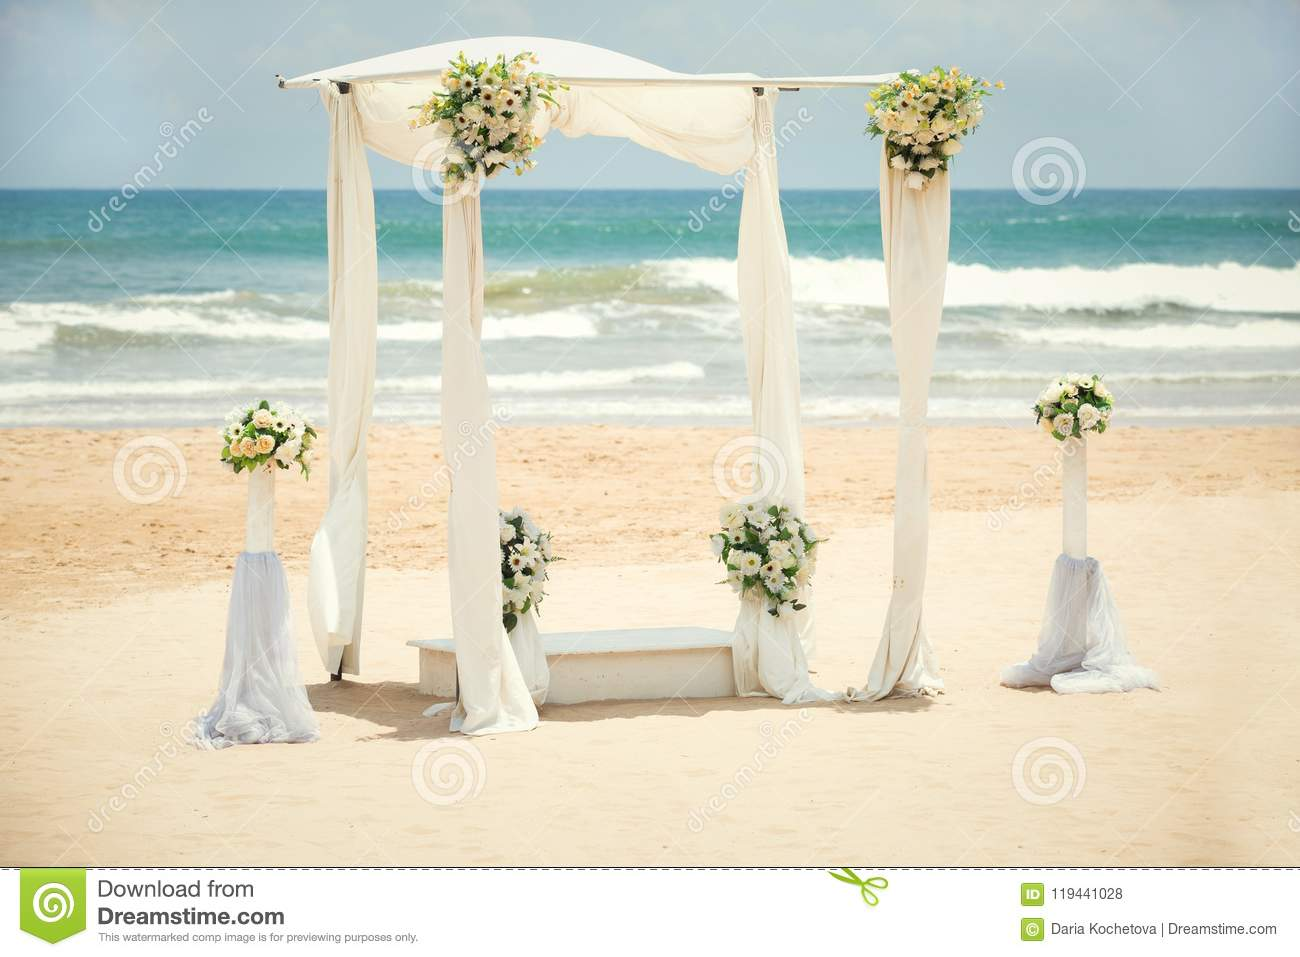 Wedding Decorations On The Beach Stock Photo - Image of holiday, mauritius:  119441028